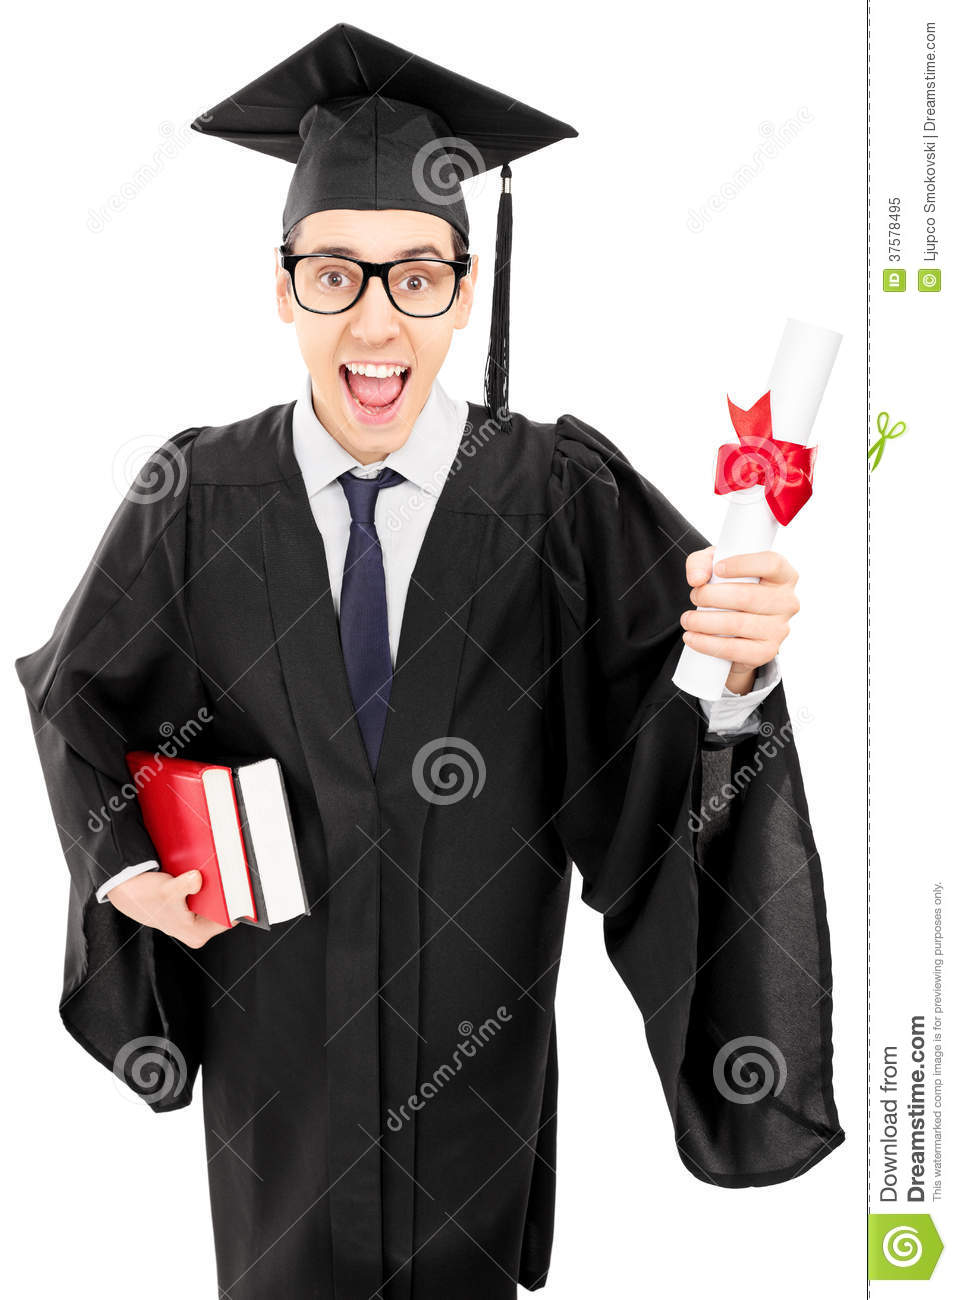 Young Man In Graduation Gown Holding Books And A Diploma Stock Image ...